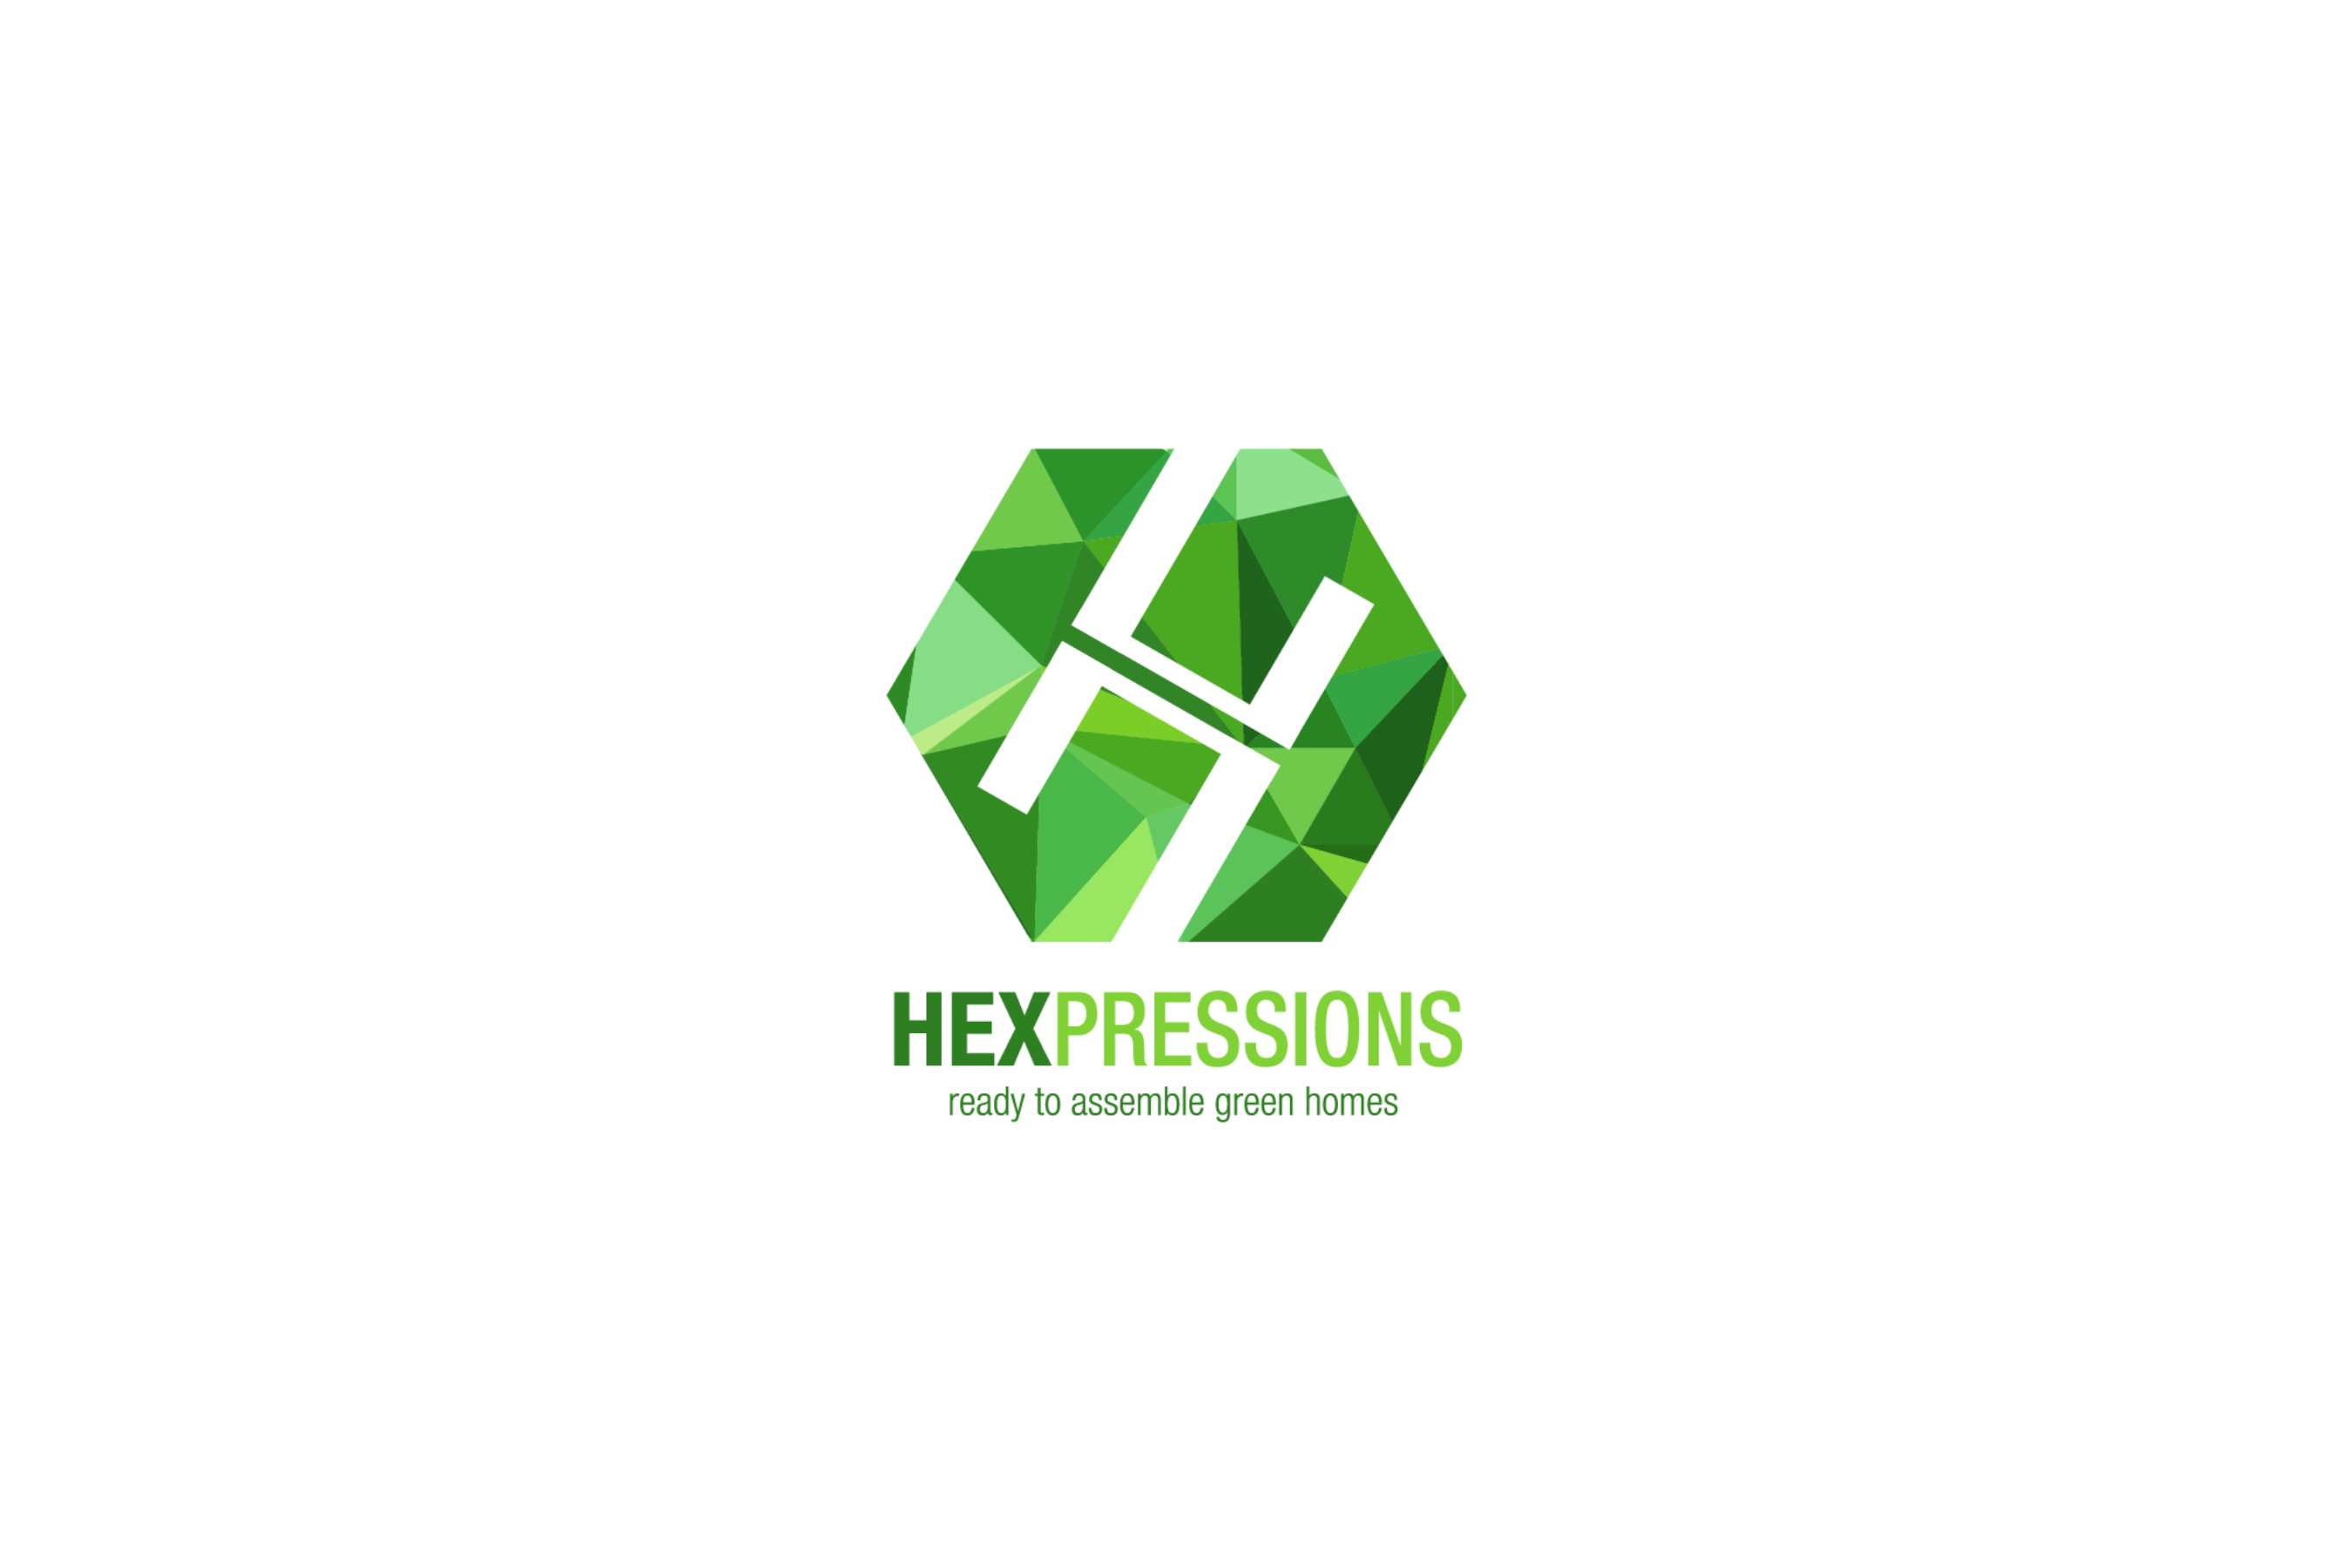 Hexpressions